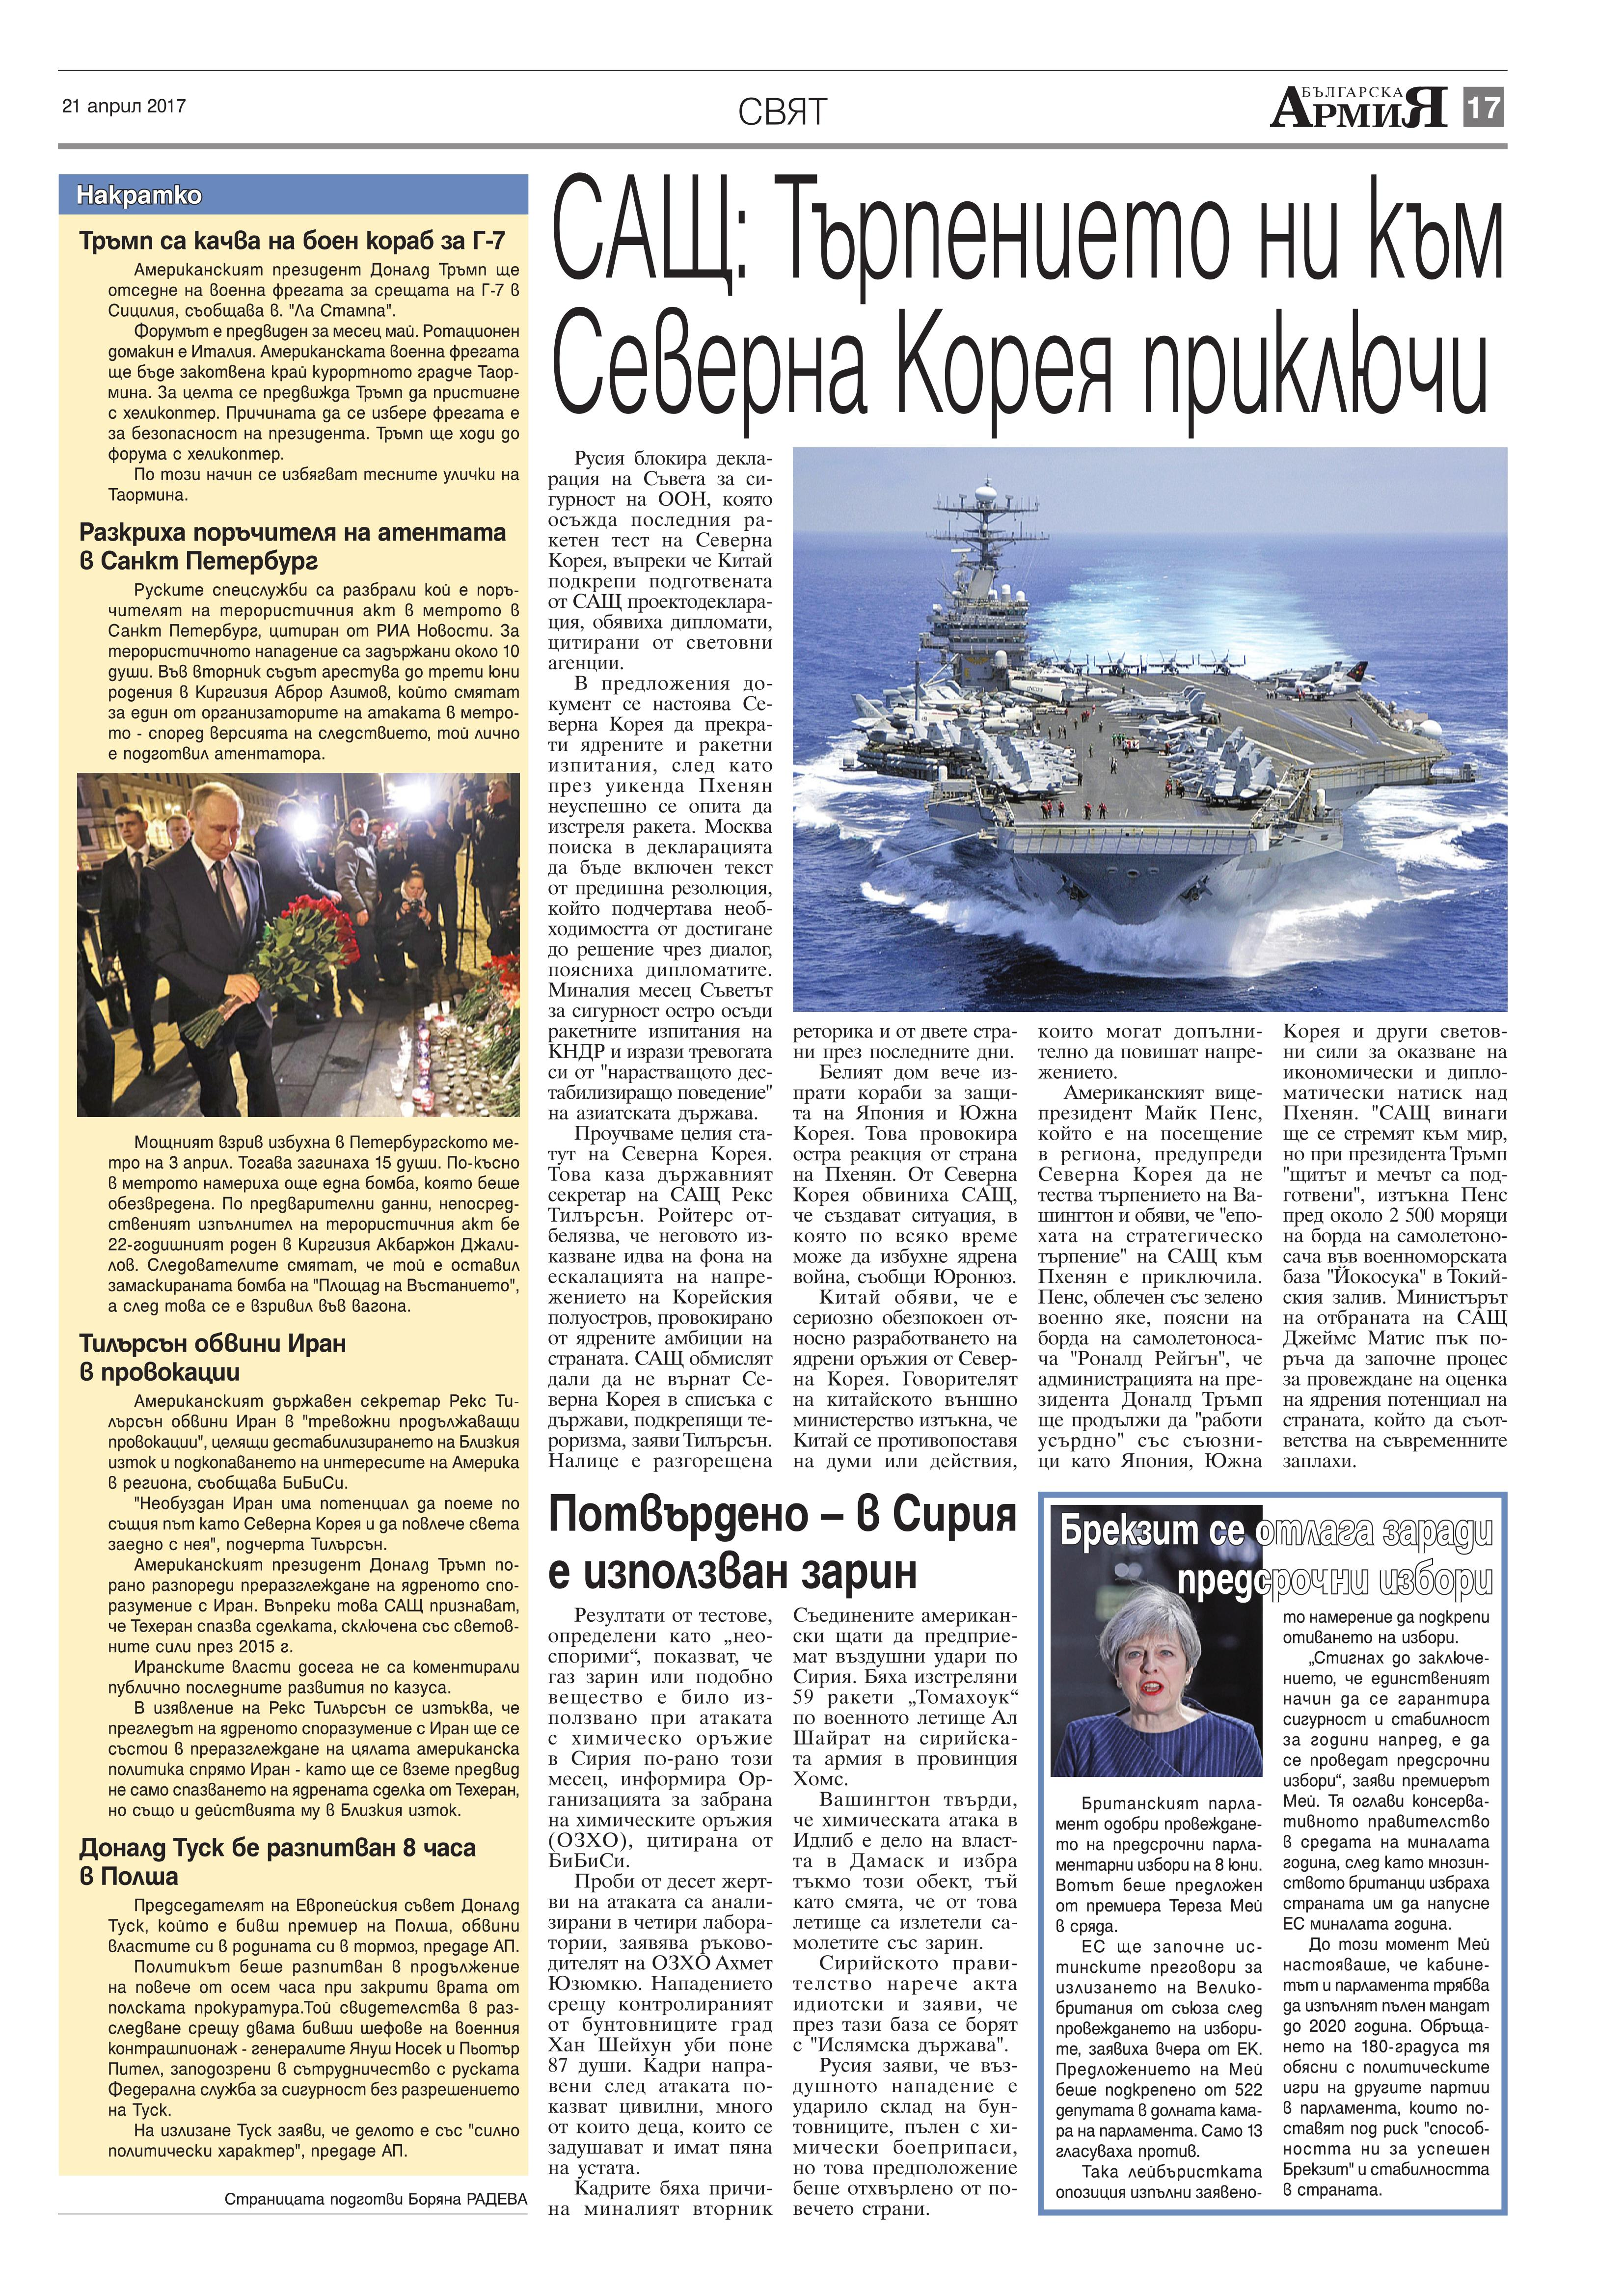 http://armymedia.bg/wp-content/uploads/2015/06/17.page1_-19.jpg